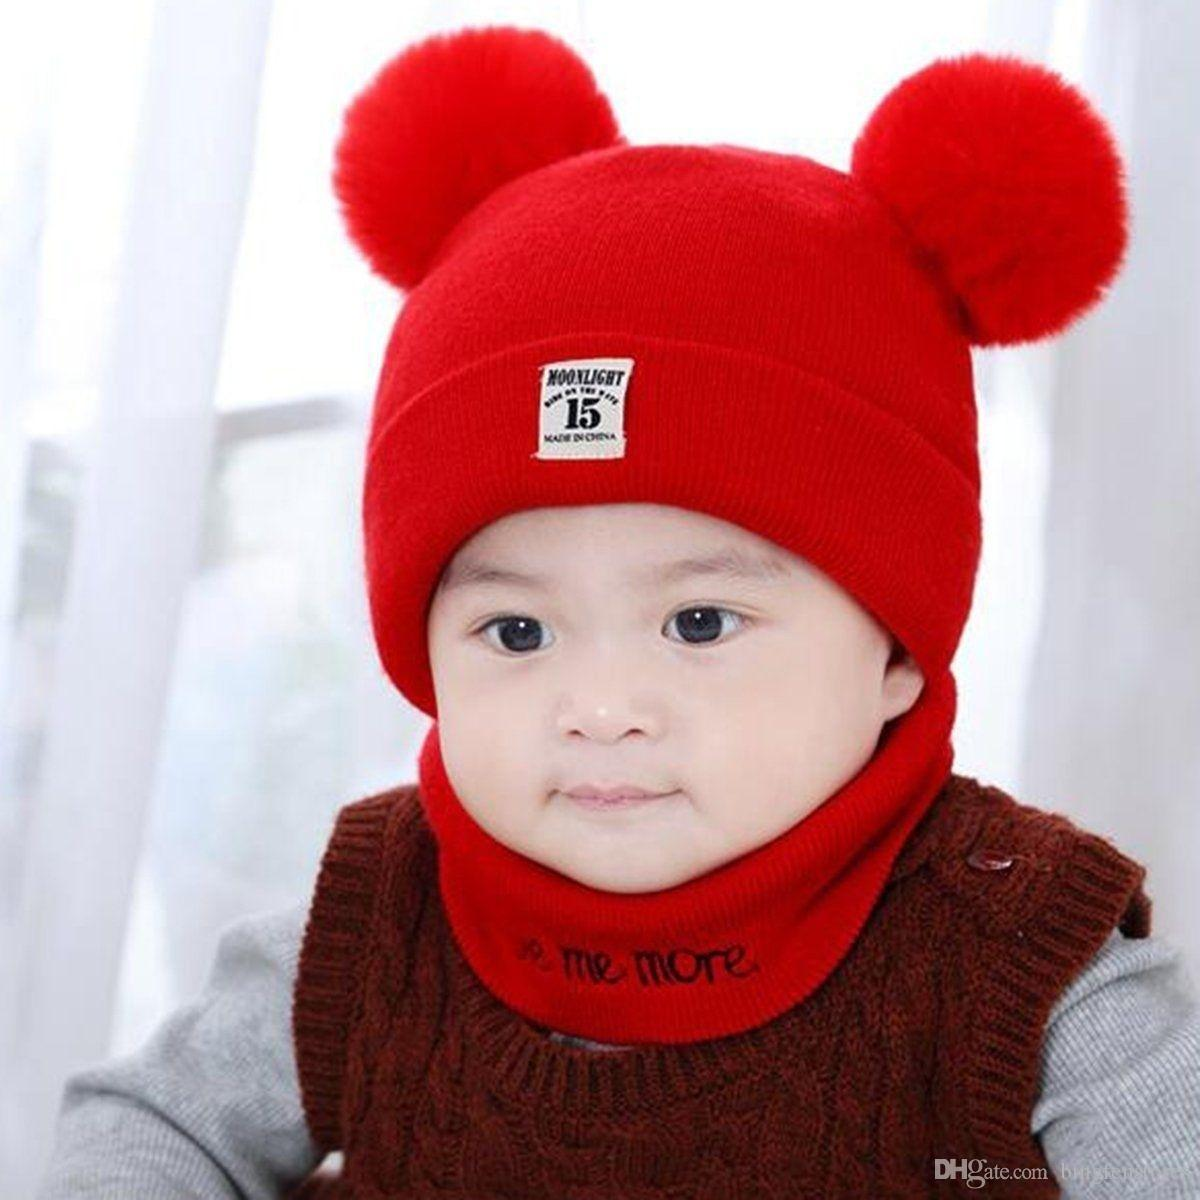 Autumn Winter Unisex Cute Kids Baby Toddler Infant Outdoor Cap Hat Beanie with Neck Circle Scarf Set